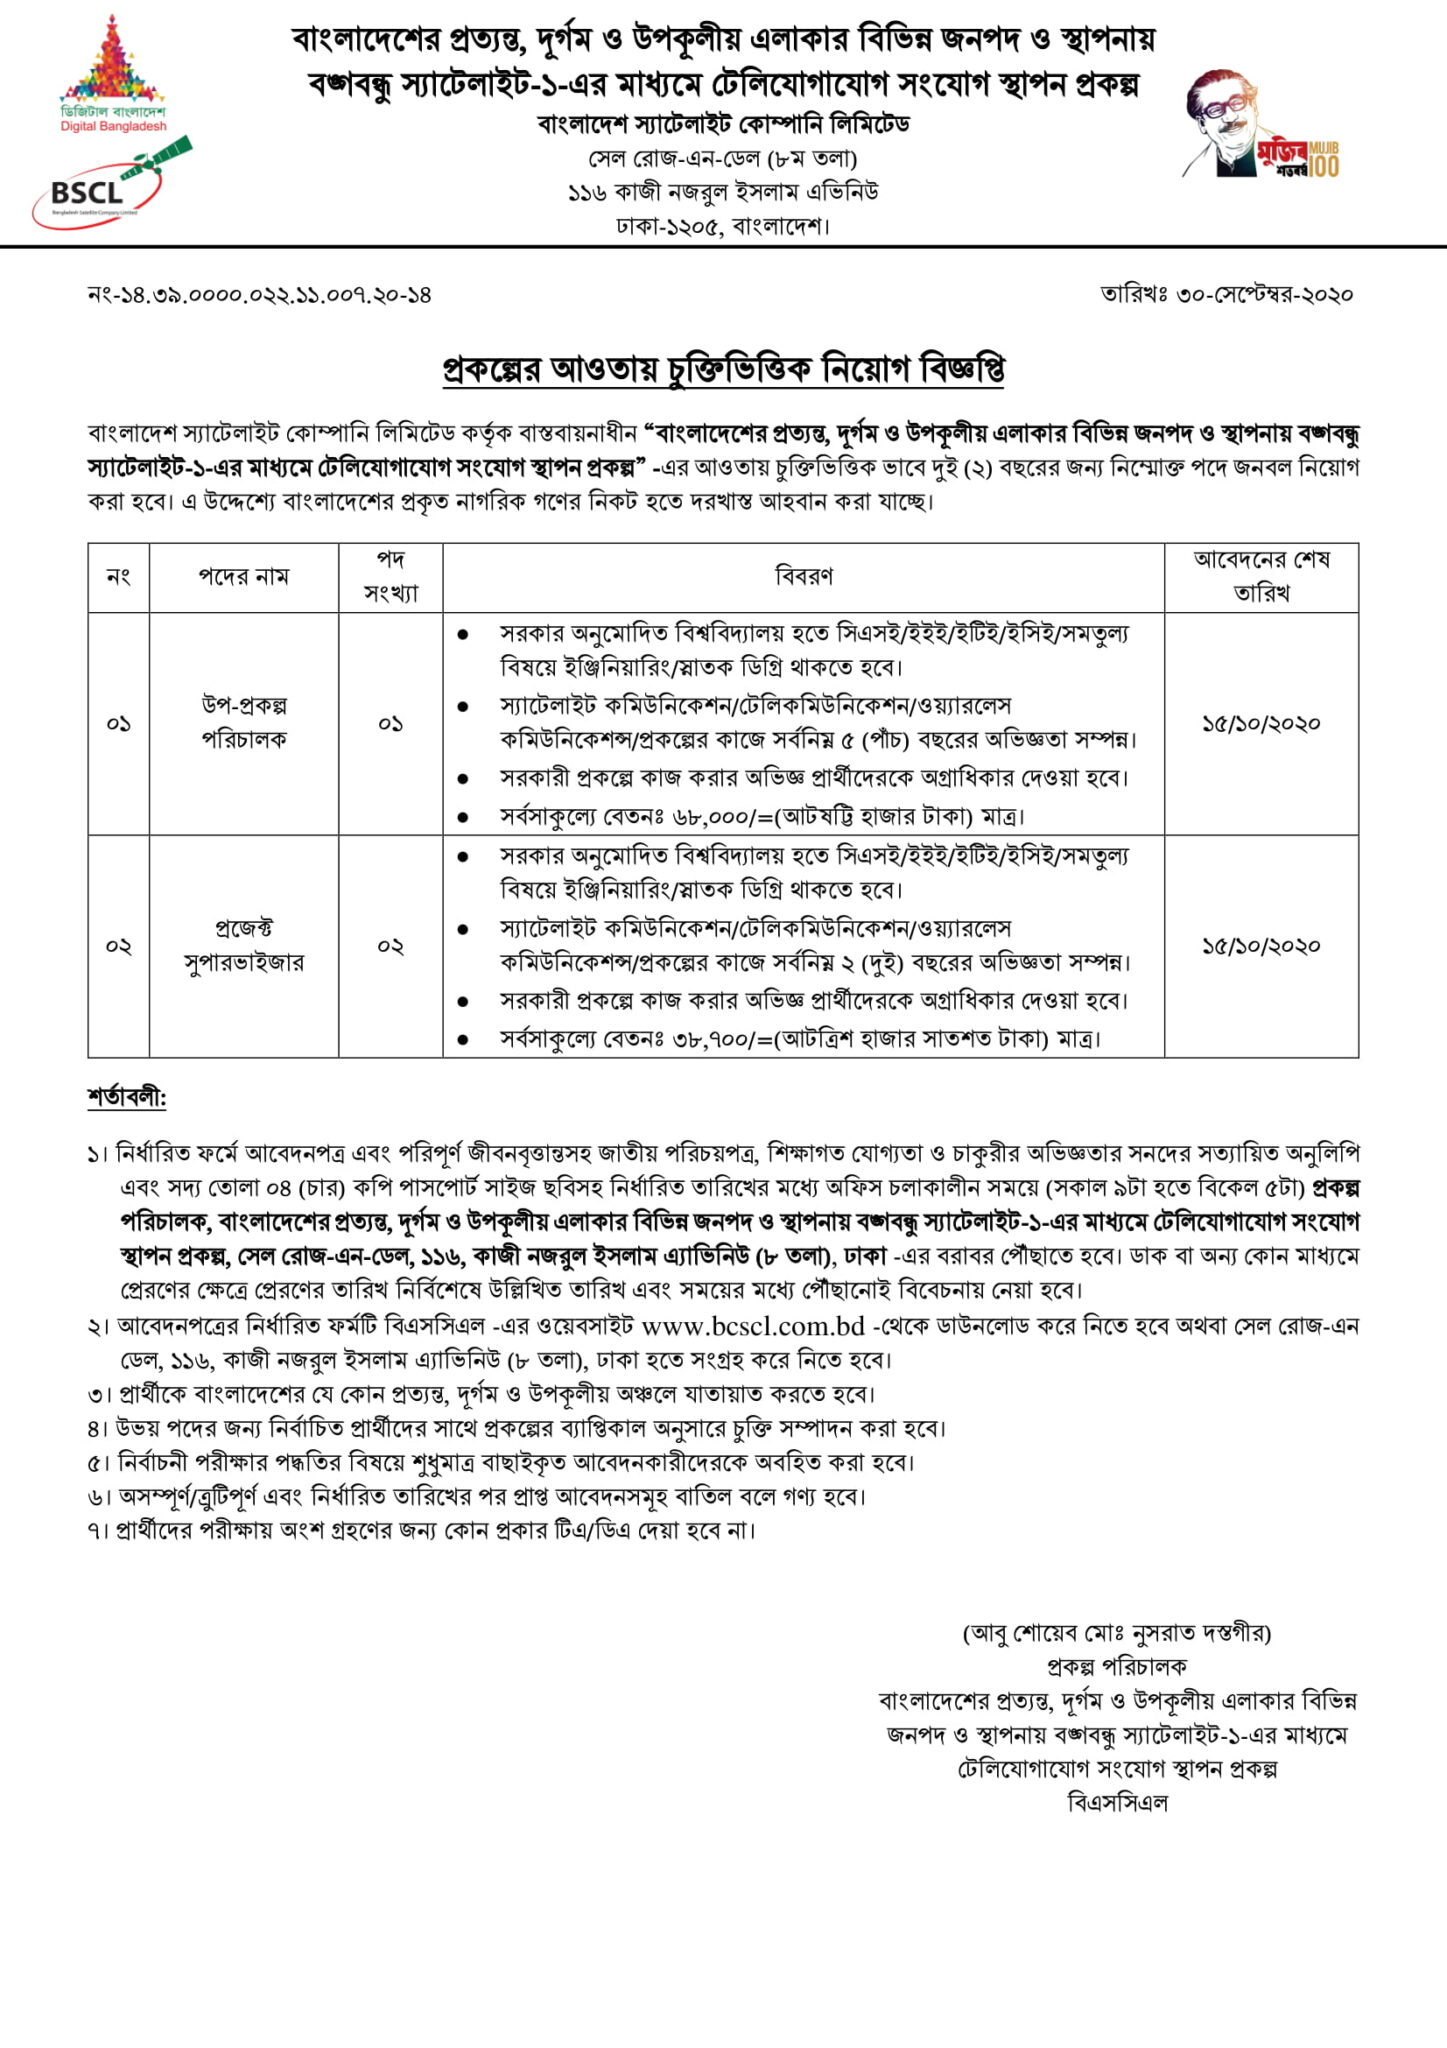 Bangladesh Communication Satellite Company Limited job circular 2020